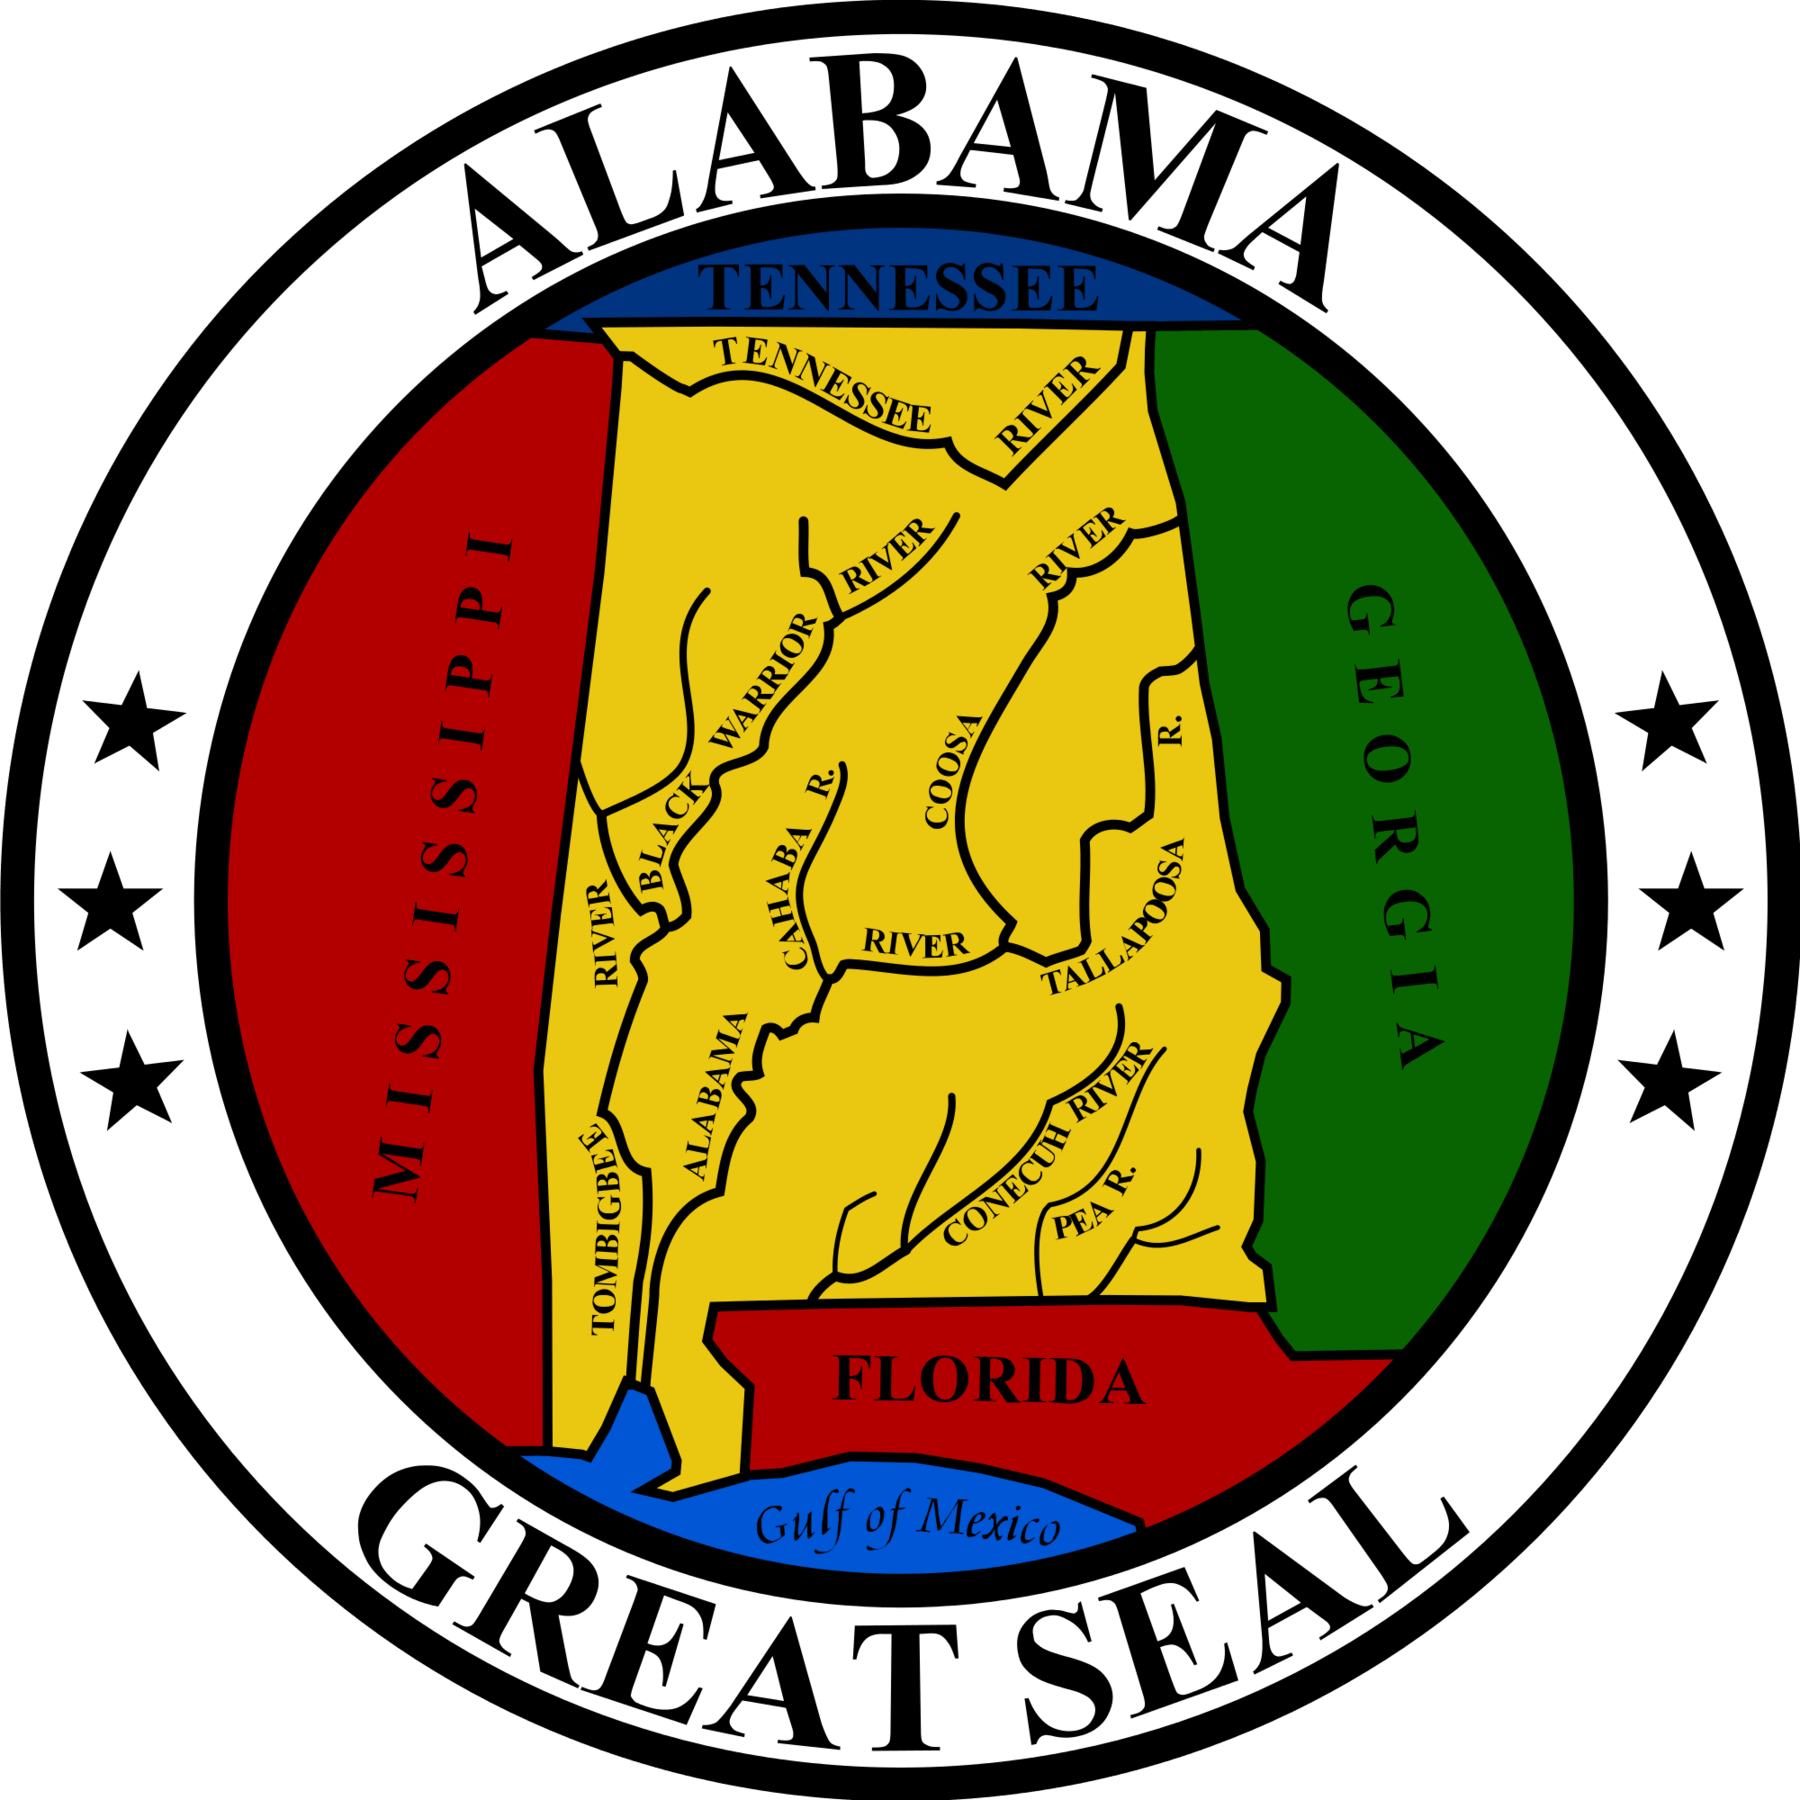 Financial clipart financial aid. Alabama student loan and